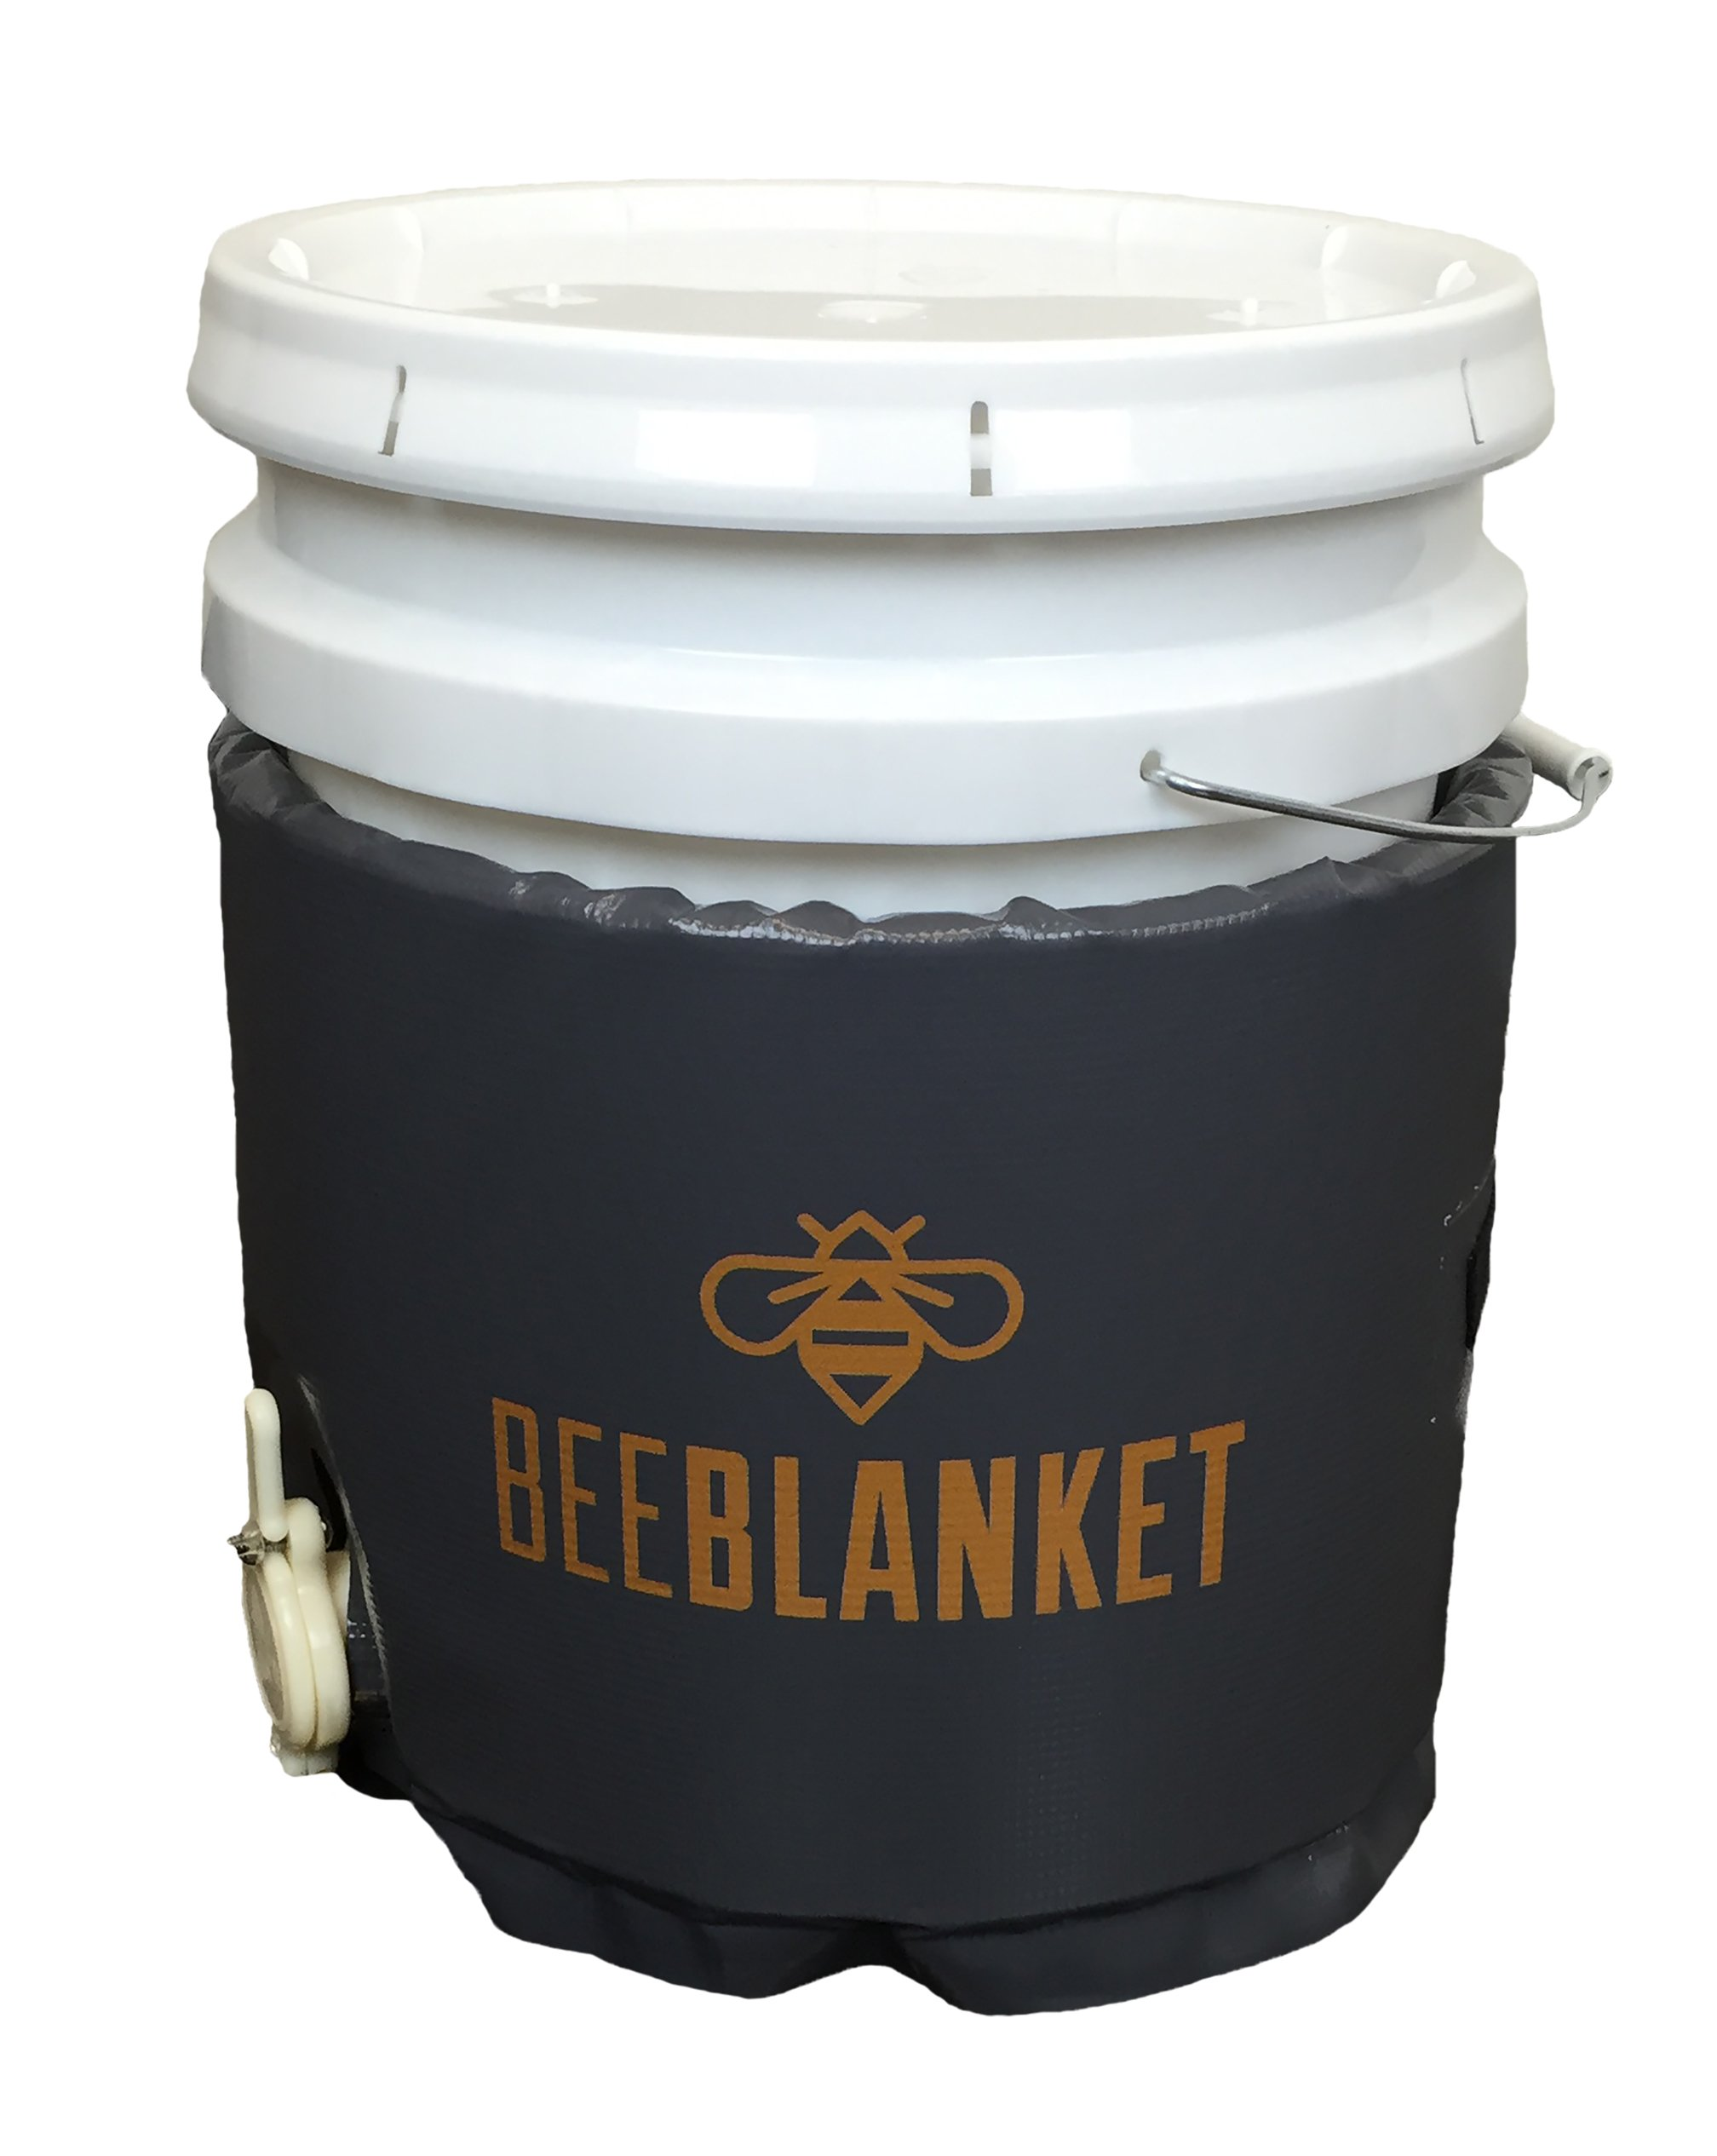 Powerblanket BB05GV Bee Blanket Honey Heater, 5 gal Pail Heater with Cutout for Gate Valve, Charcoal Gray